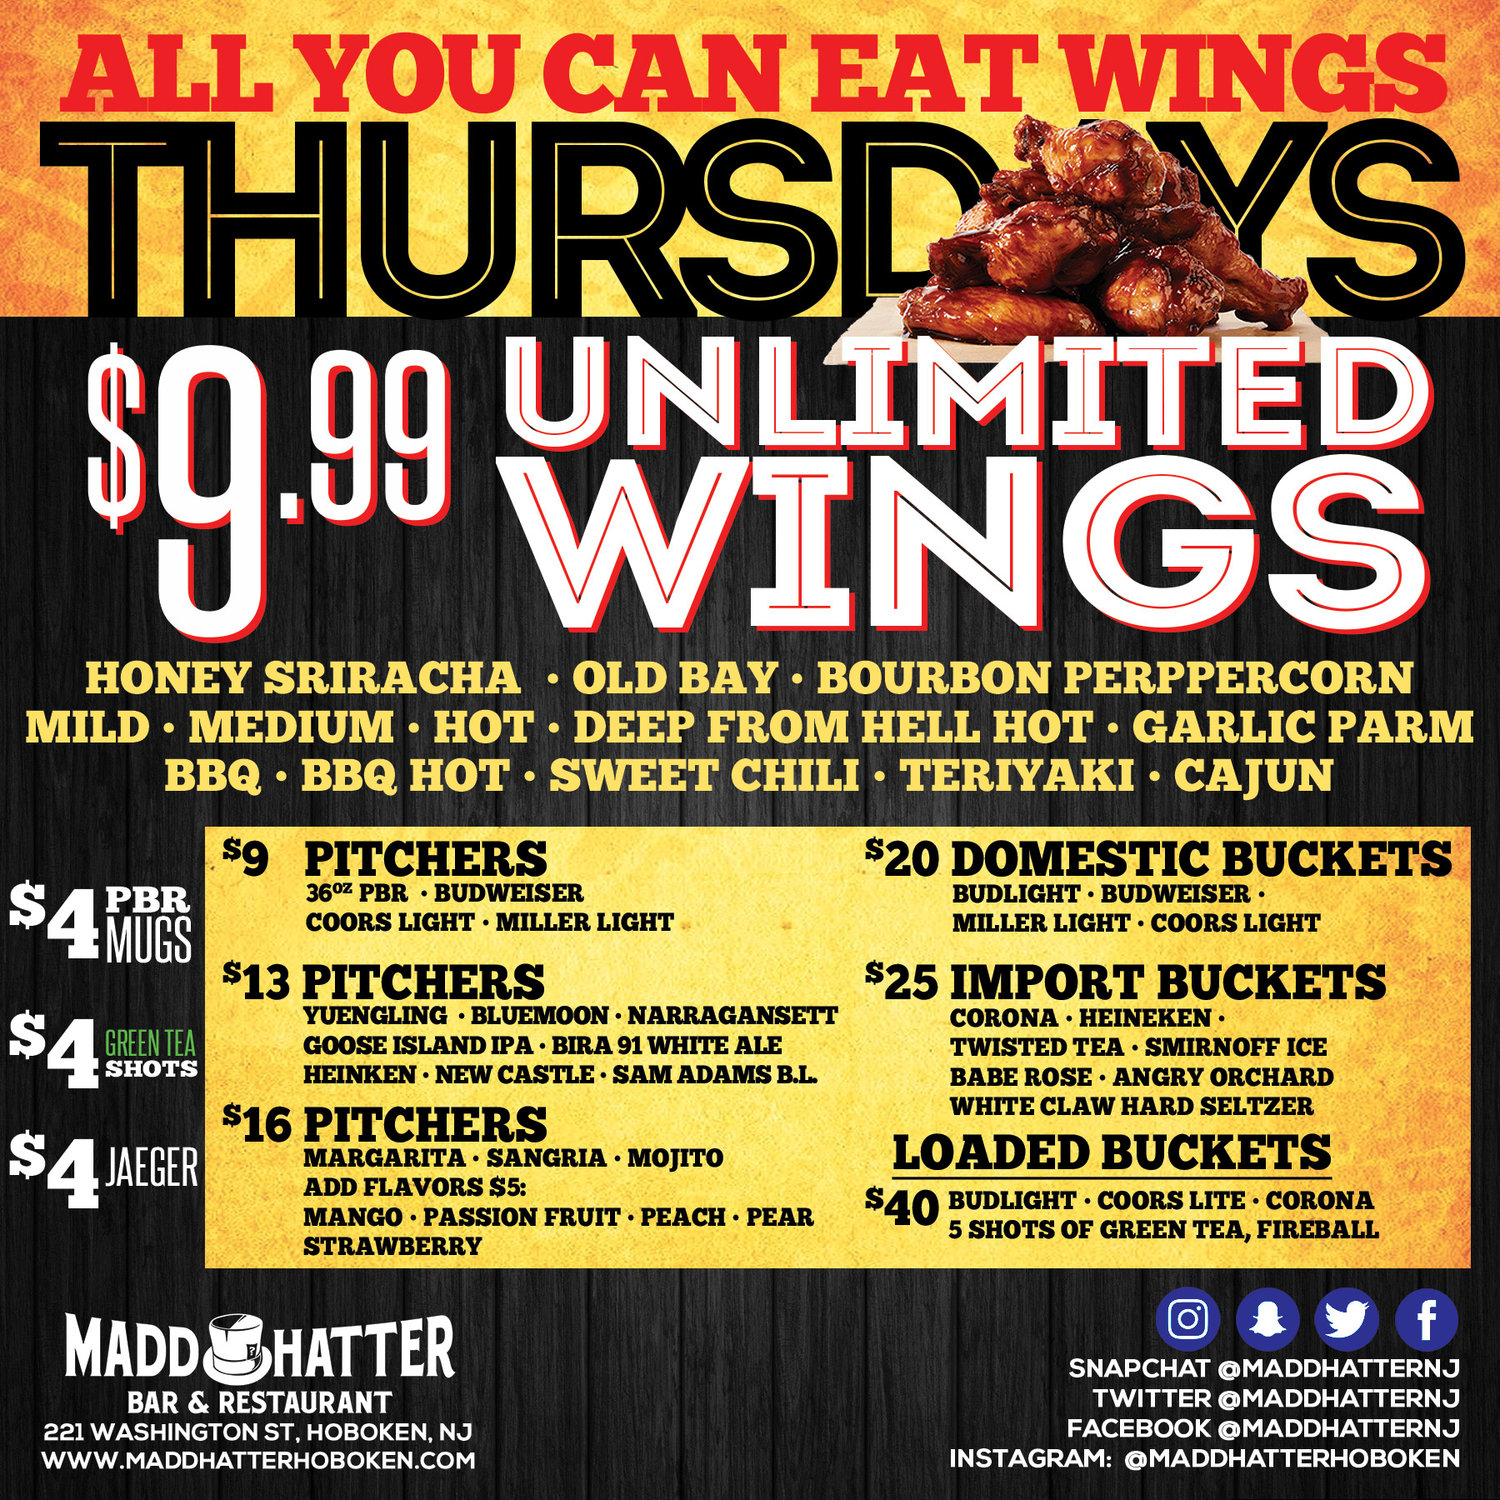 bar specials, unlimited wings, fried chicken